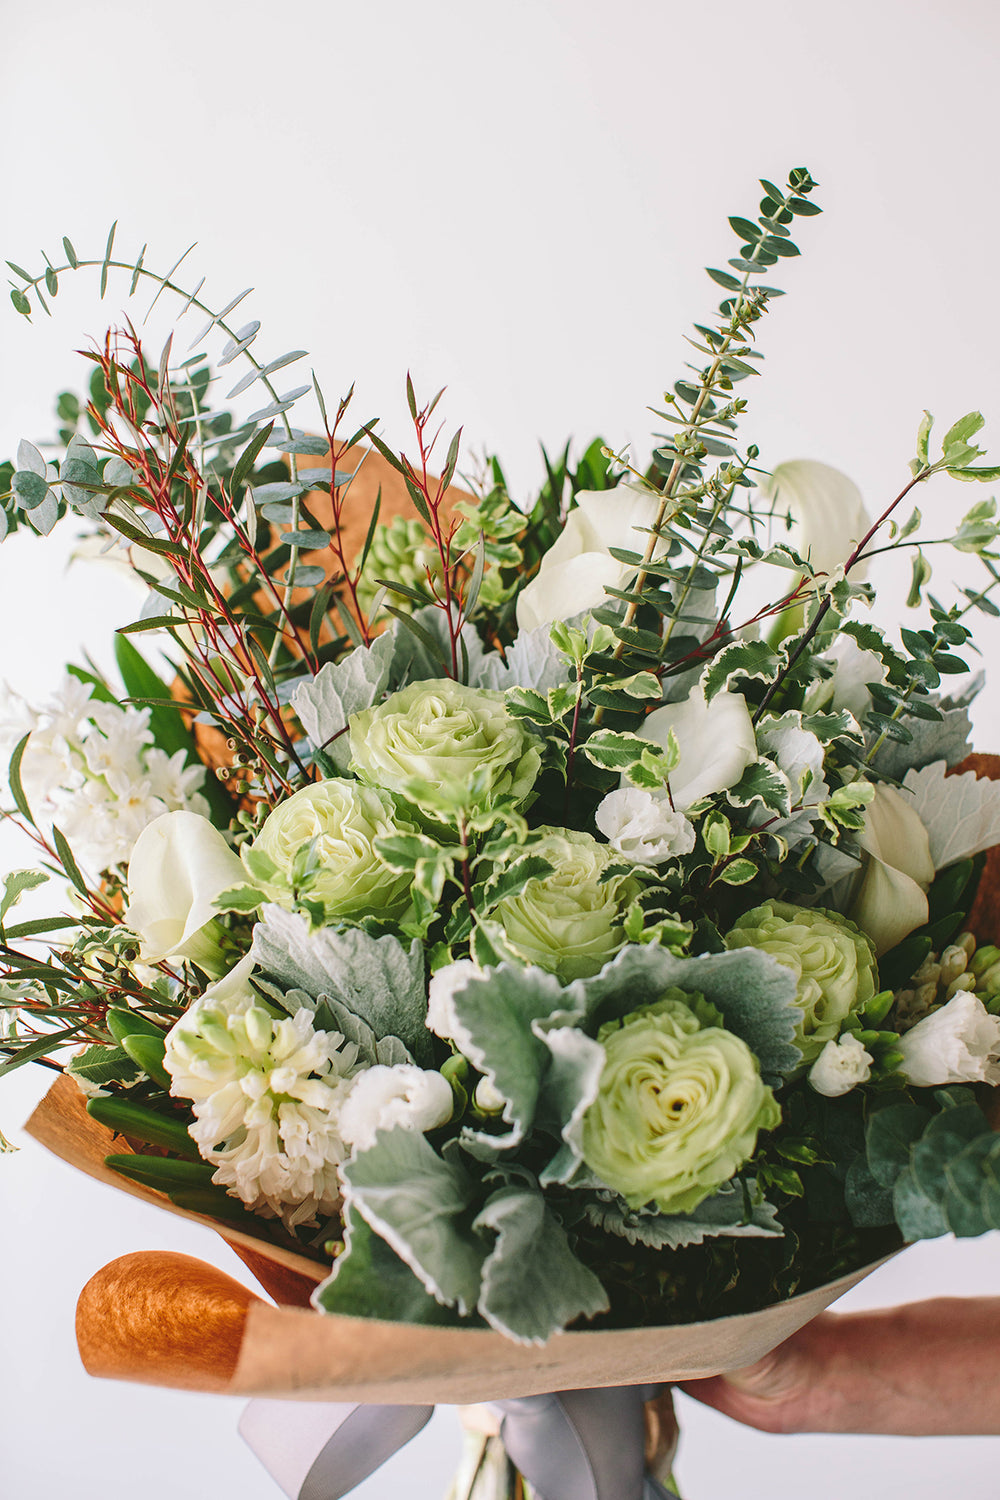 verde variety green Wildflora Los Angeles florist Ventura Blvd Studio City flower bouquet floral arrangement wedding event special occasion shop store Eucalyptus green foliage rose white leaf leaves rose light pale dusty miller brown paper wrap grey ribbon variegated hyacinth calla lily